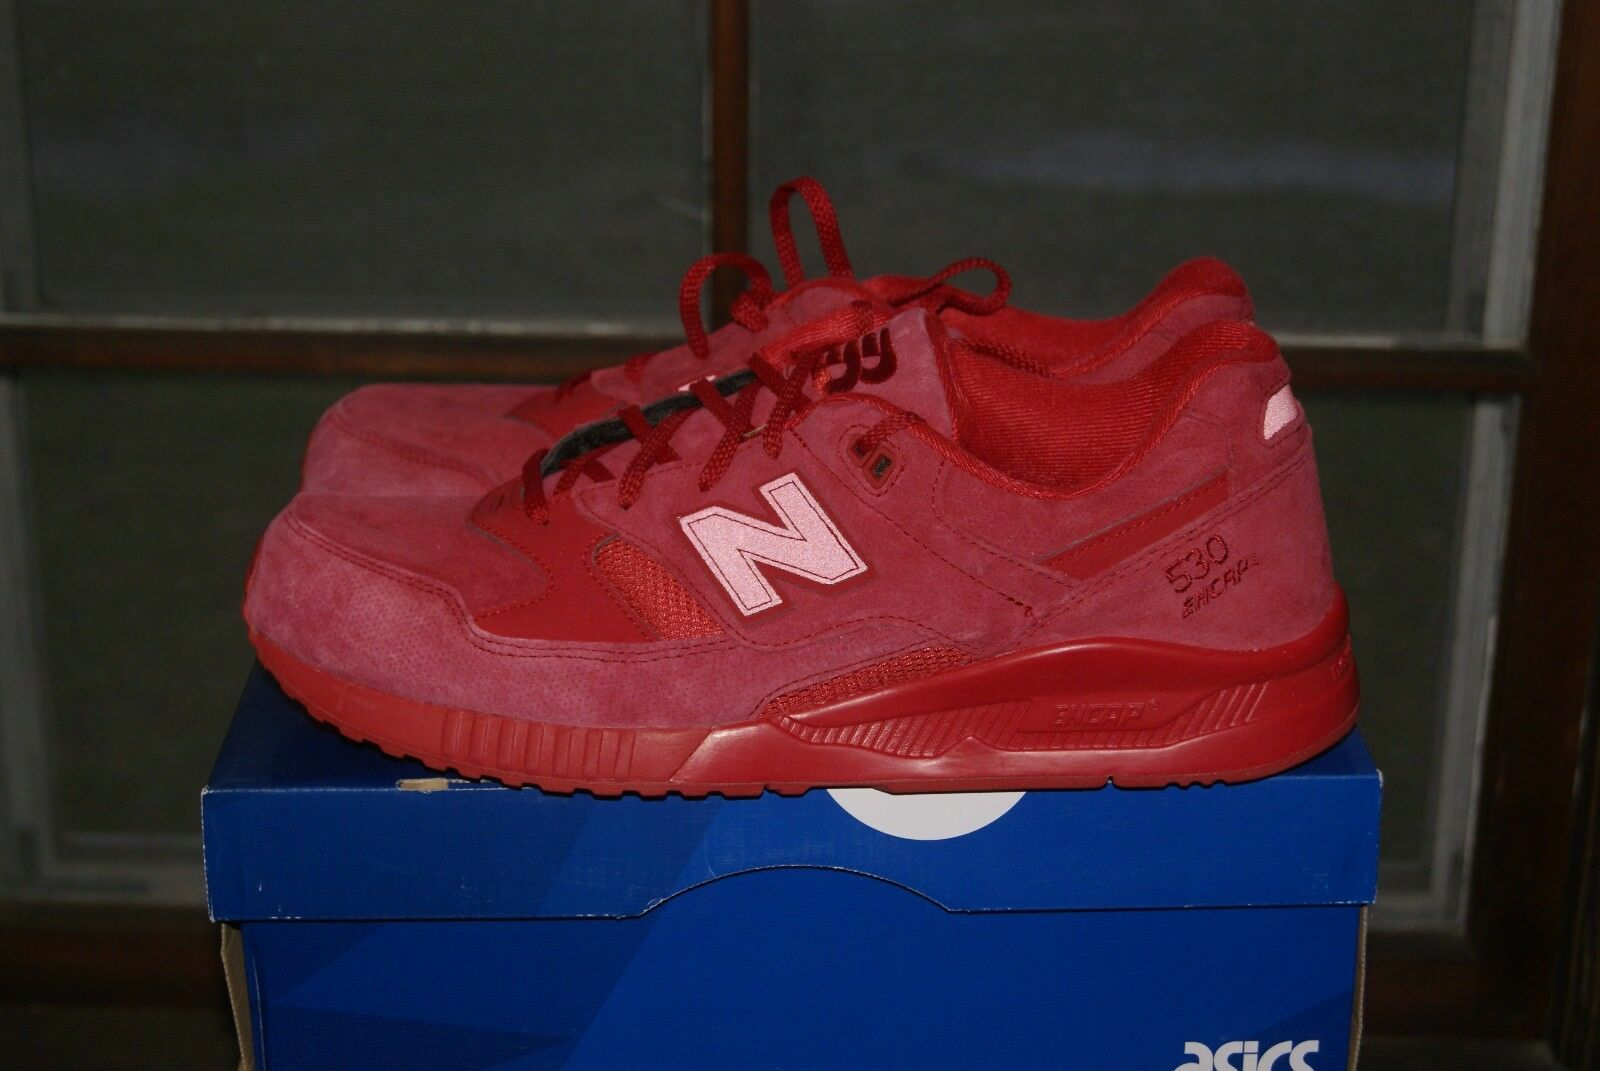 Mens New Balance M530AR Classics Traditionnels Triple Red13 Run Walk Shoes